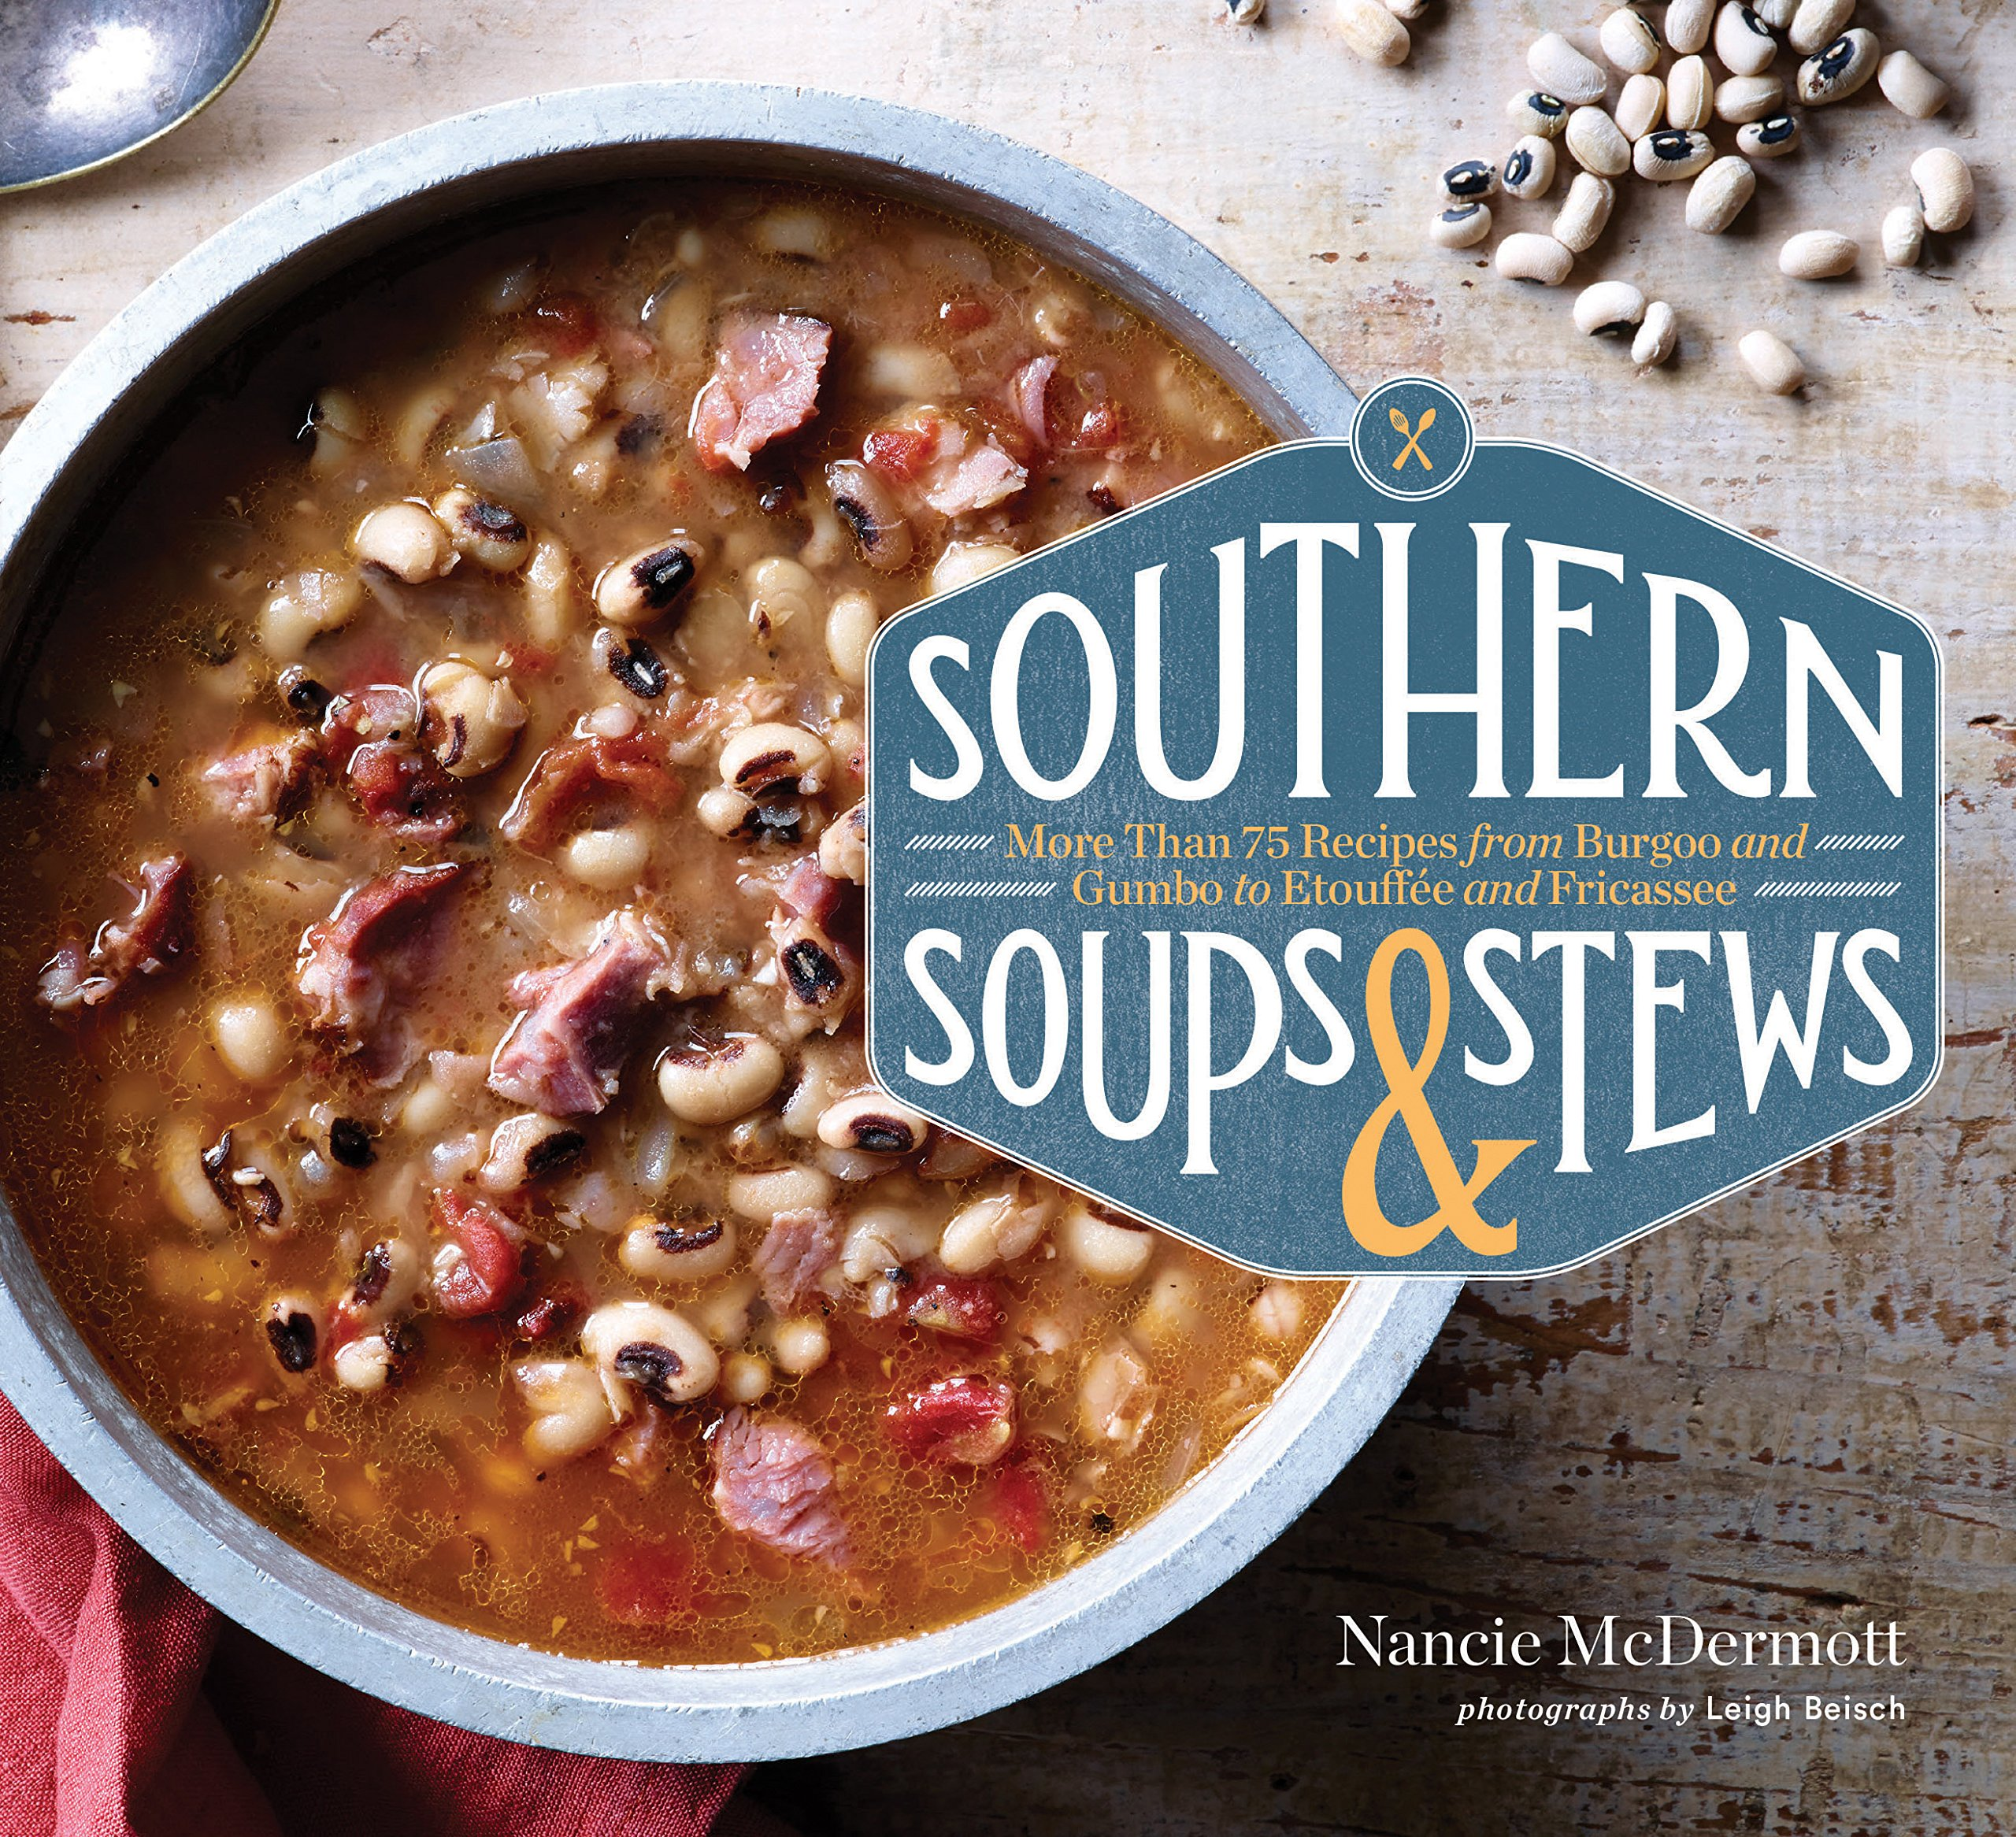 Southern Soups & Stews: More Than 75 Recipes from Burgoo and Gumbo ...